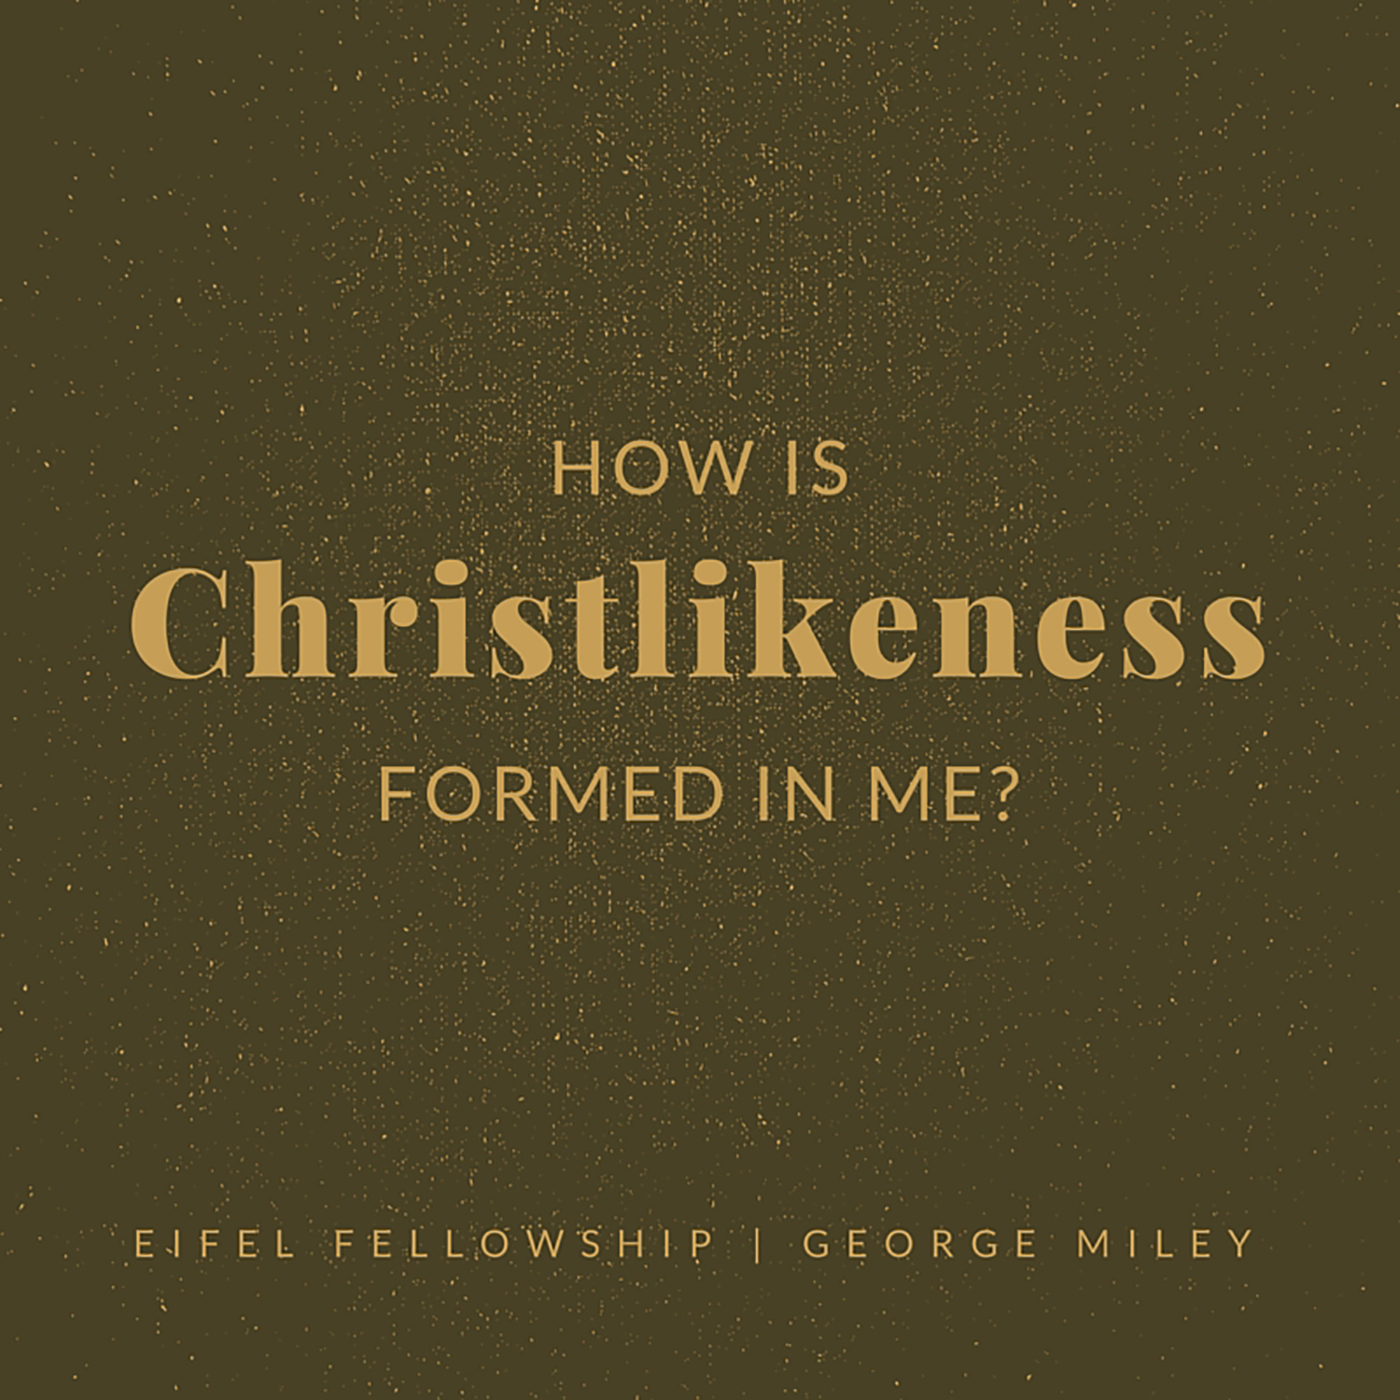 How is Christlikeness Formed in Me?